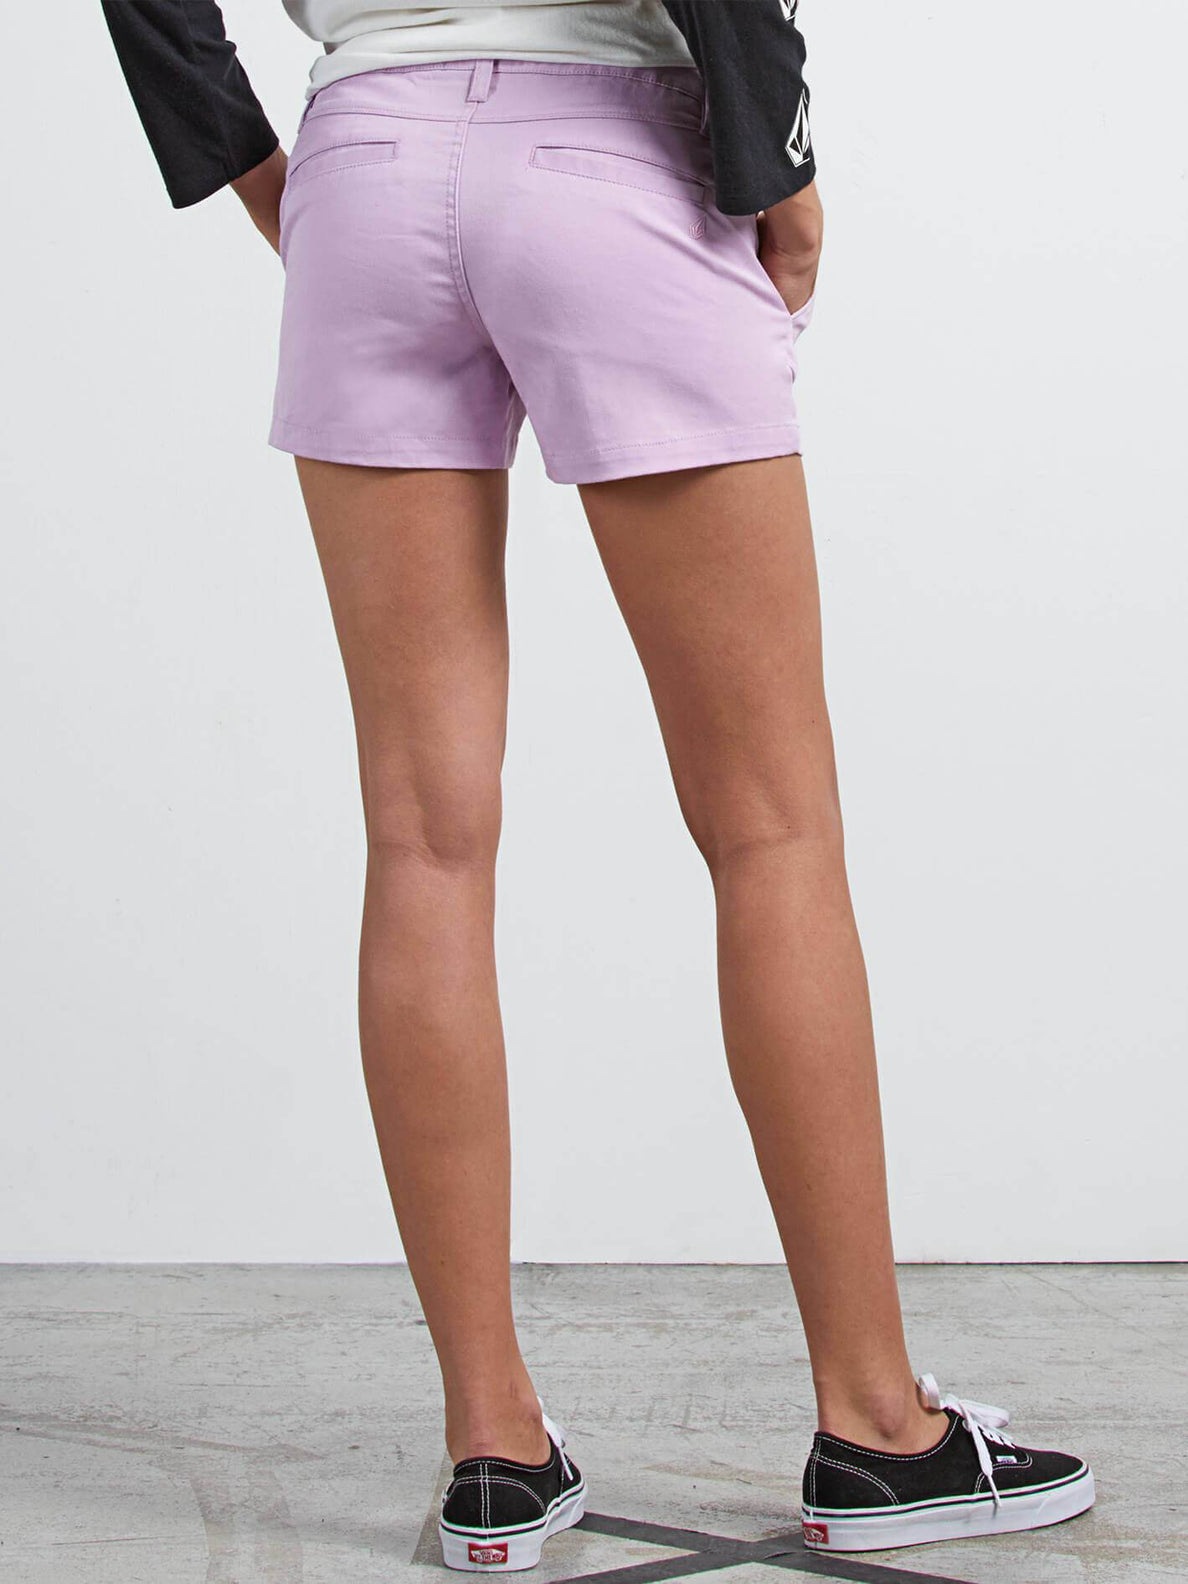 Frochickie Short In Blurred Violet, Back View